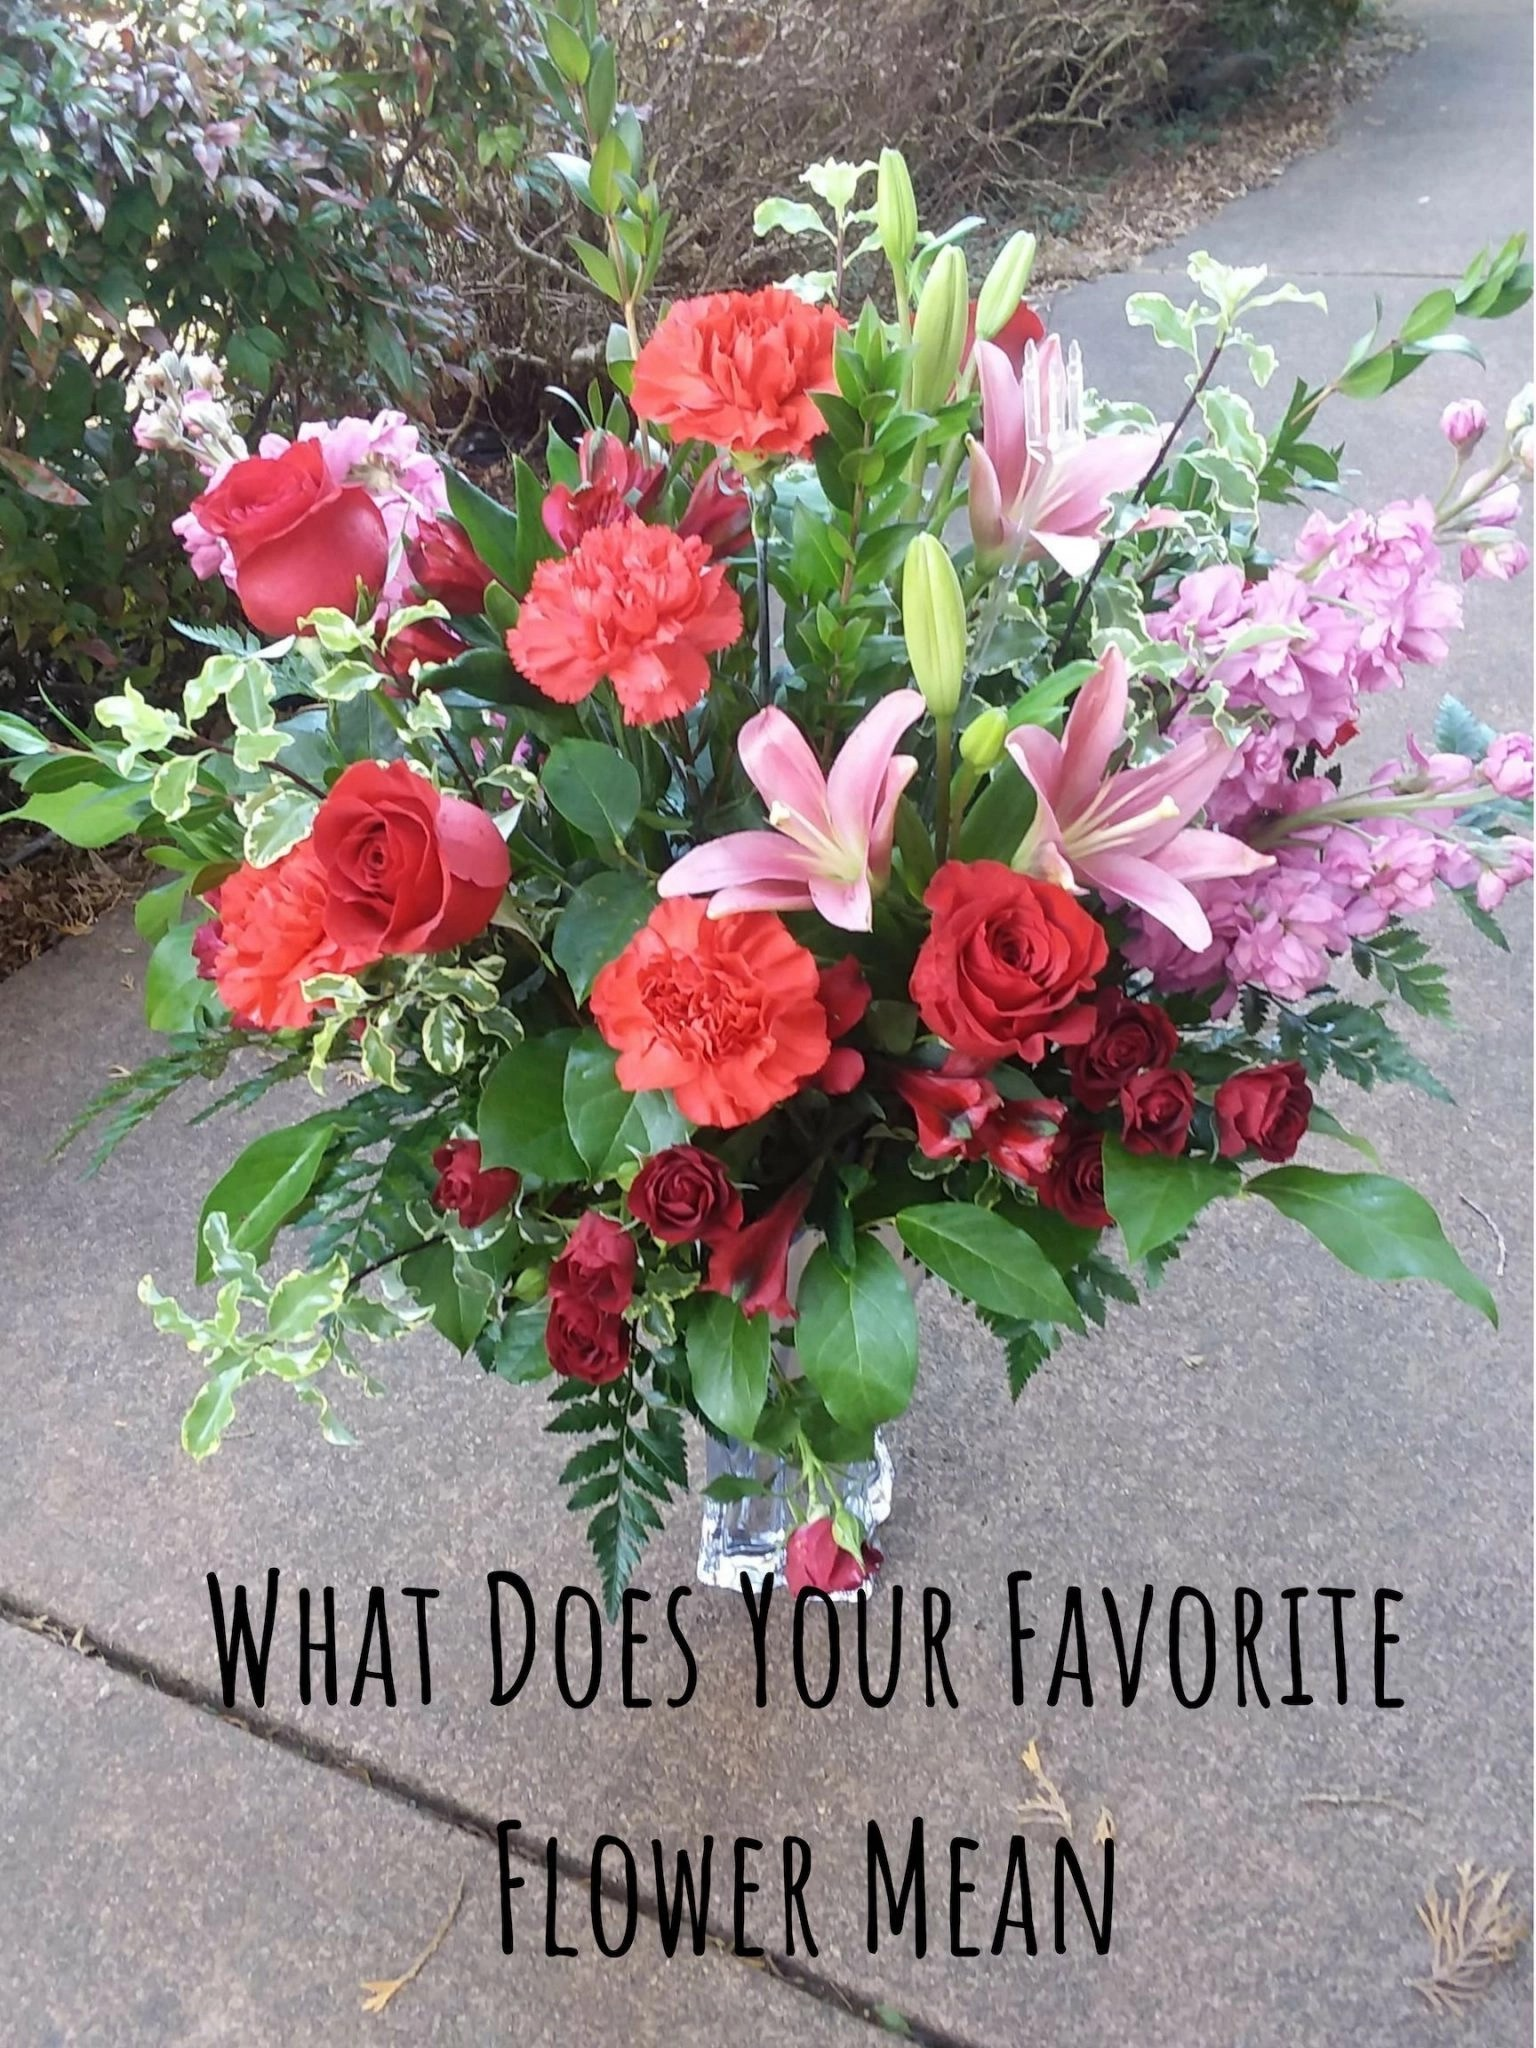 What Does Your Favorite Flower Mean